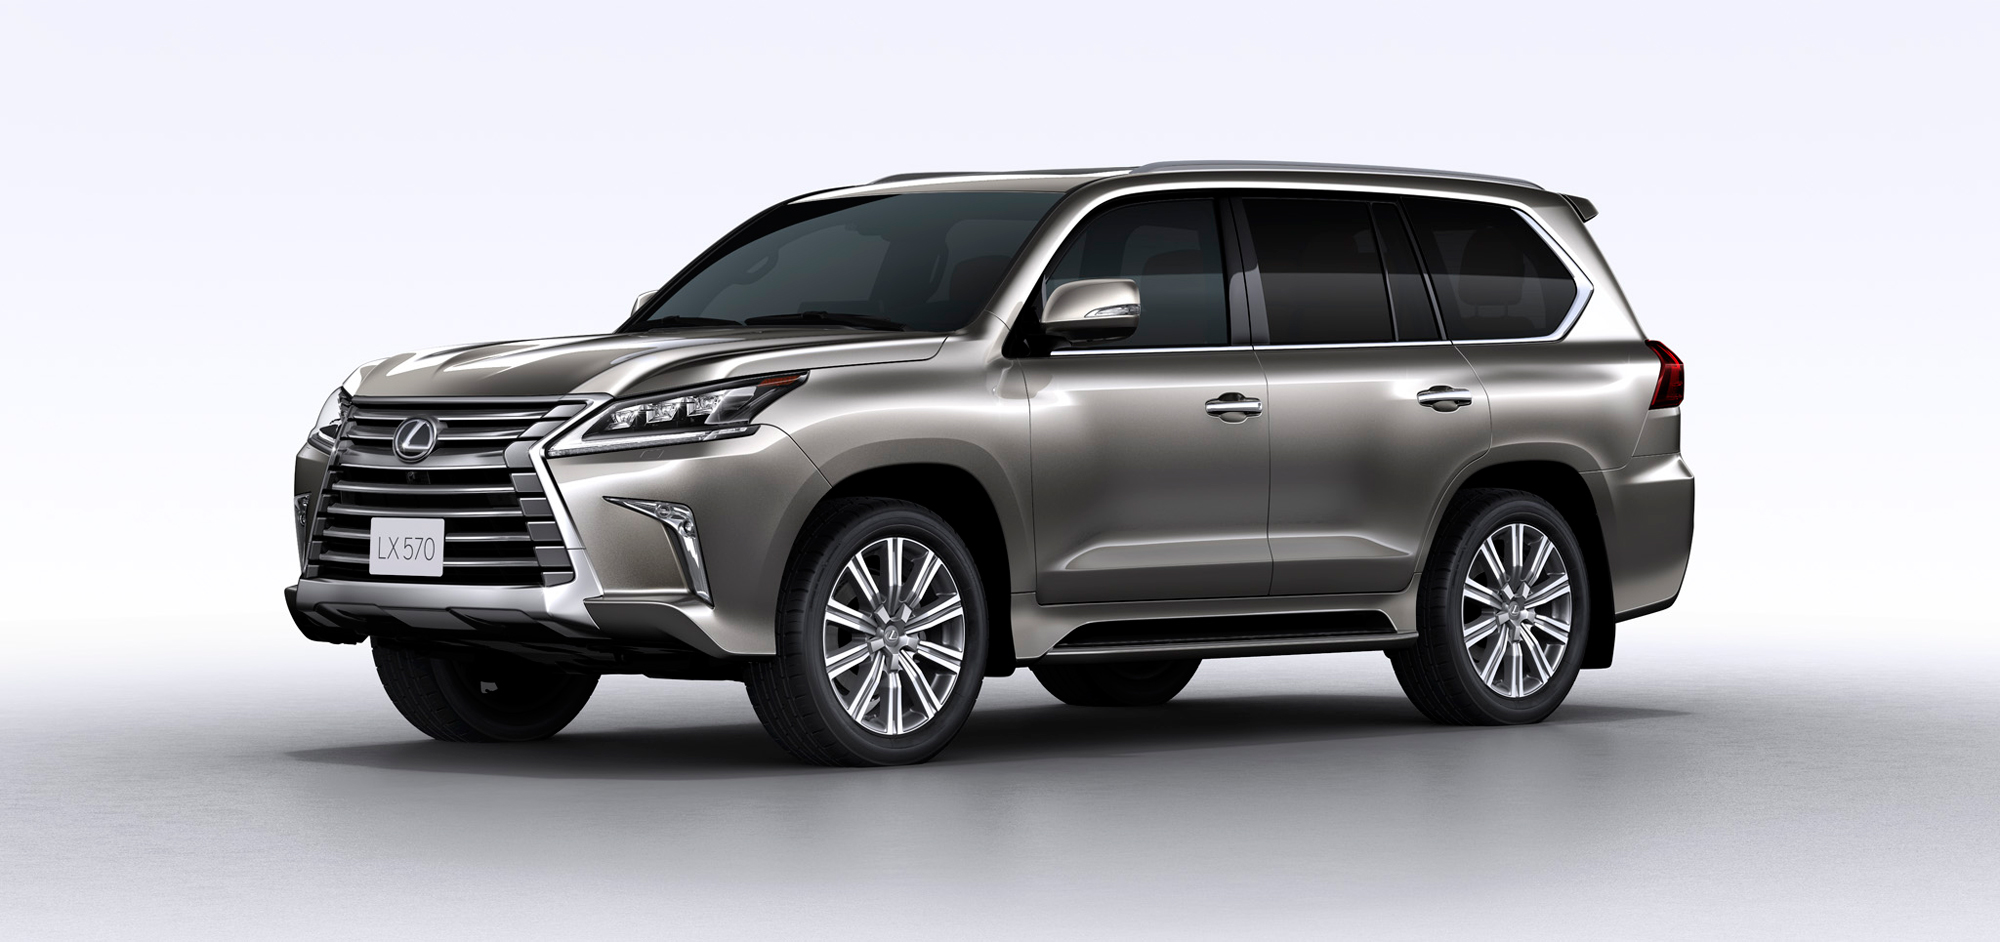 2016 Lexus Lx570 Launchedmotoring Middle East Car News